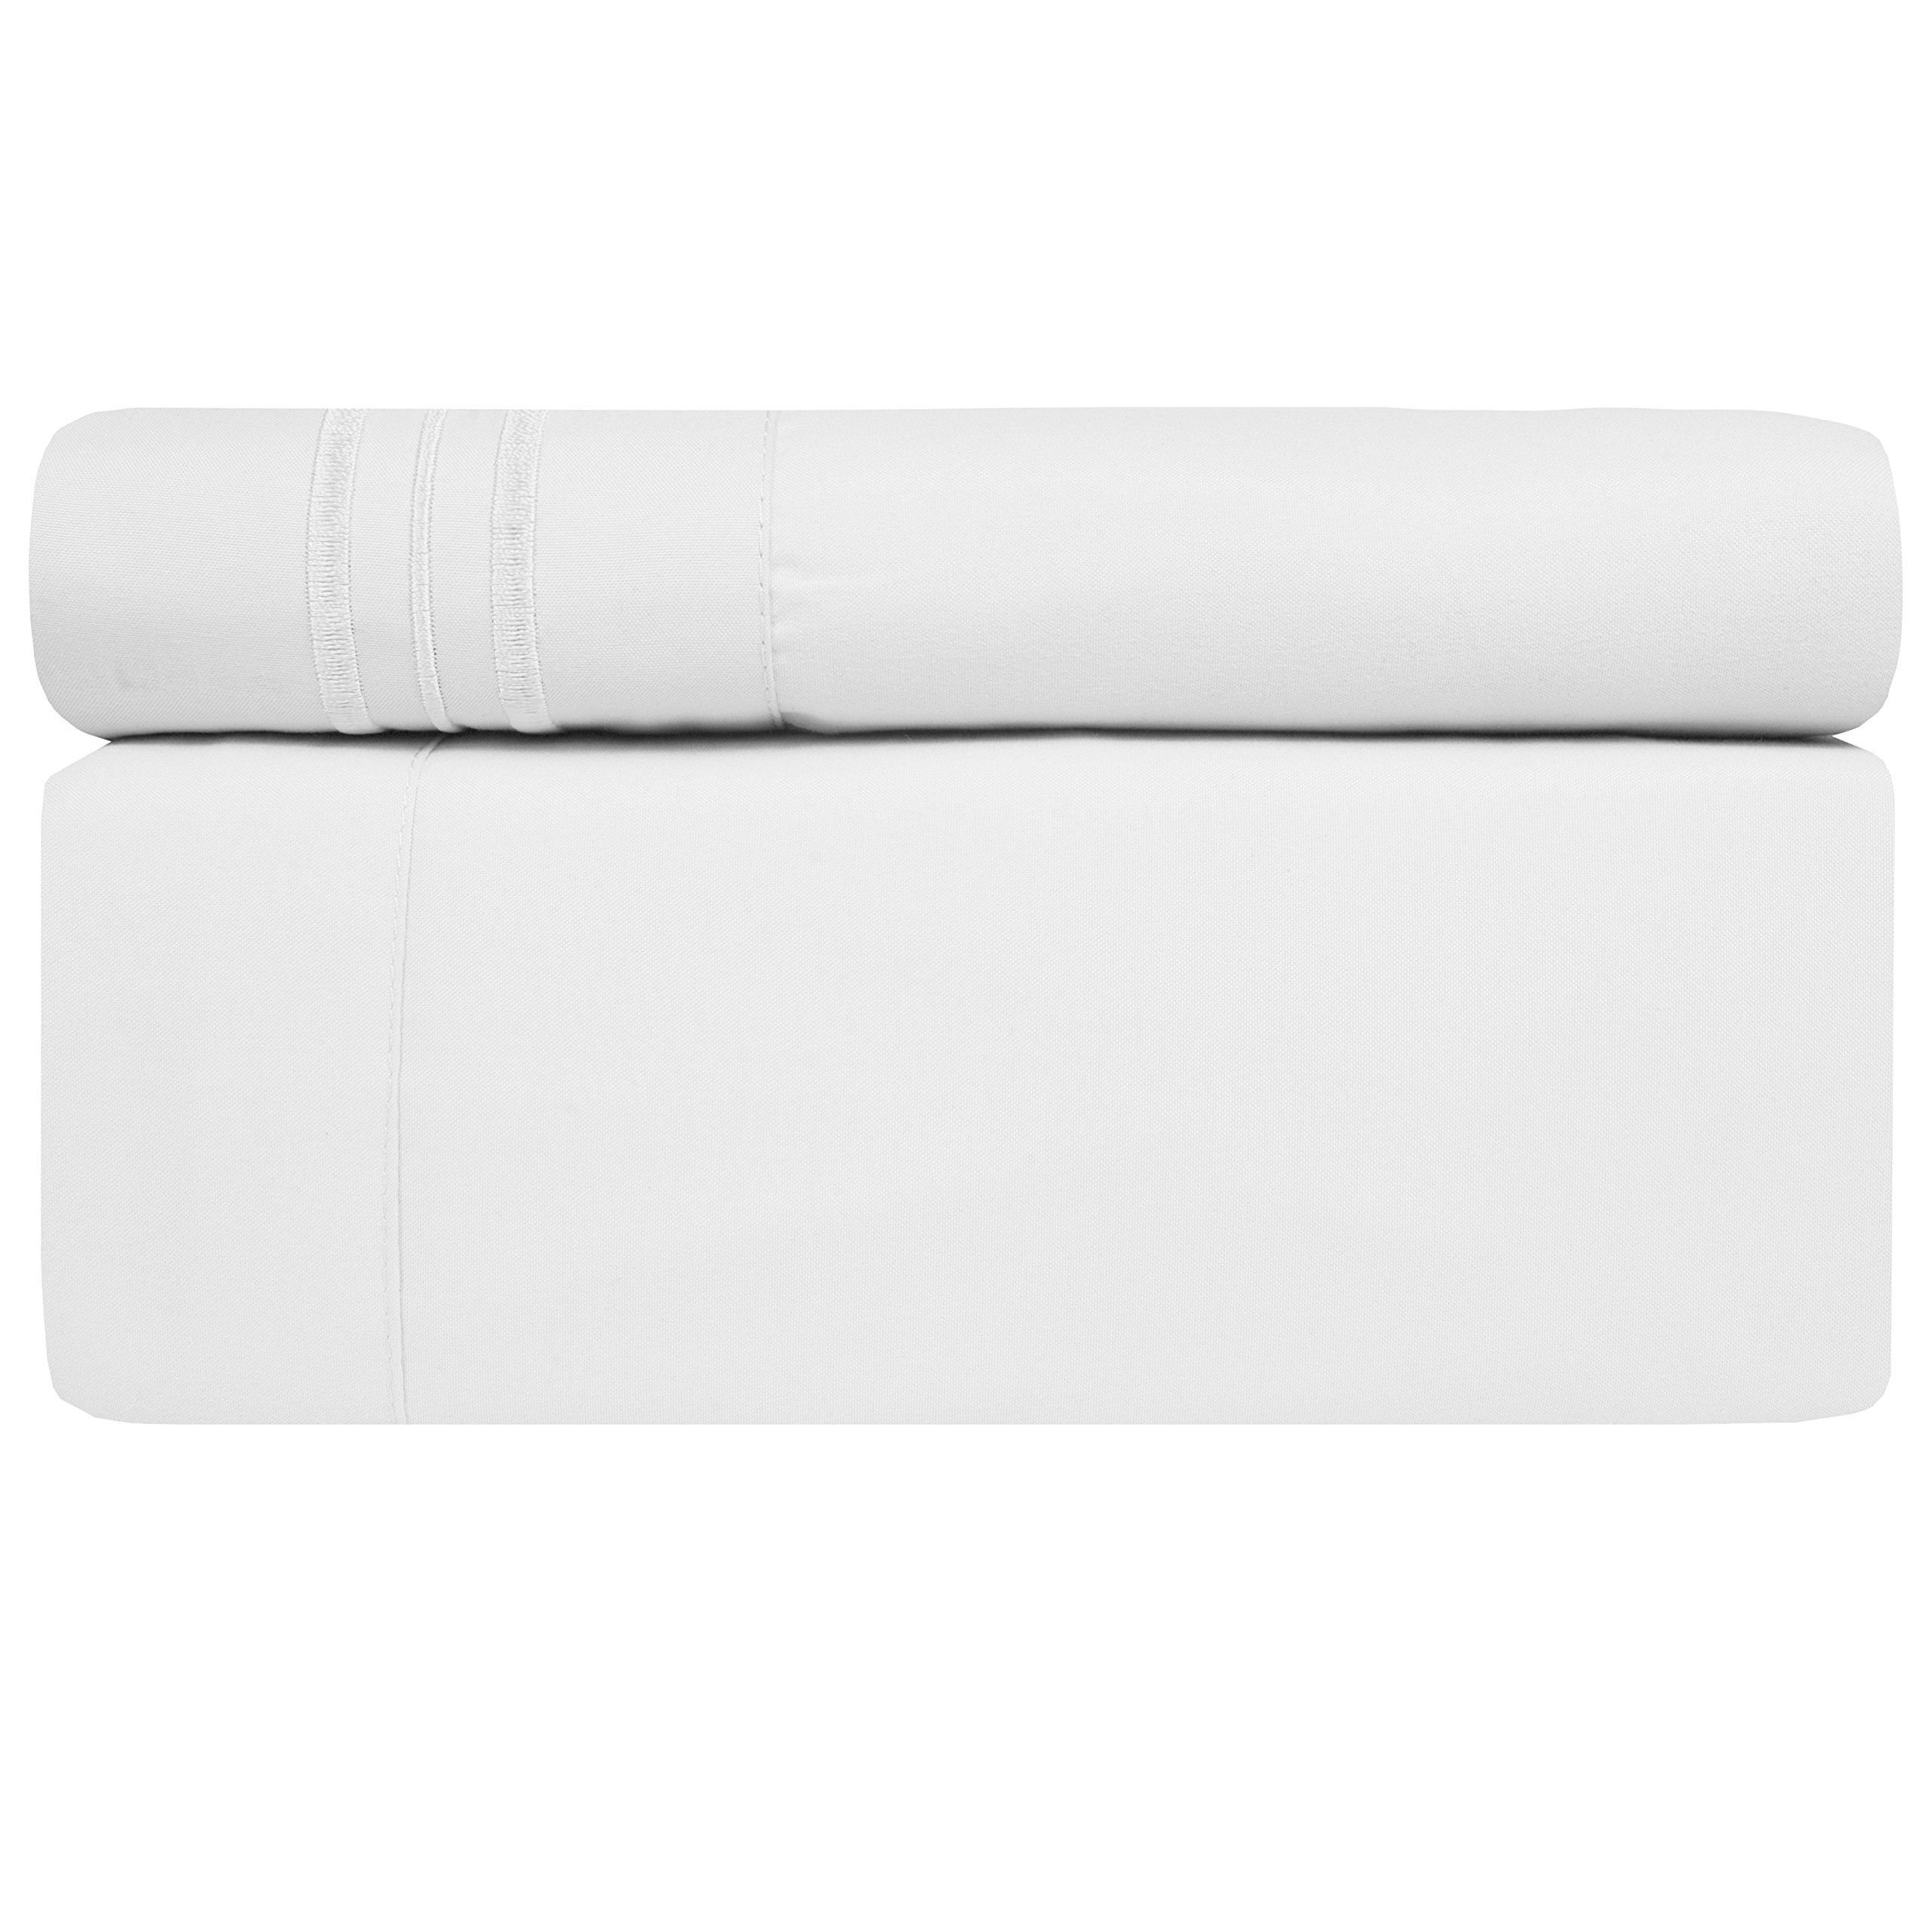 Sweet Home Collection 1800 Thread Count Egyptian Quality Brushed Microfiber 4 Piece Deep Pocket Bed Sheet Set, Queen, White by Sweet Home Collection (Image #3)